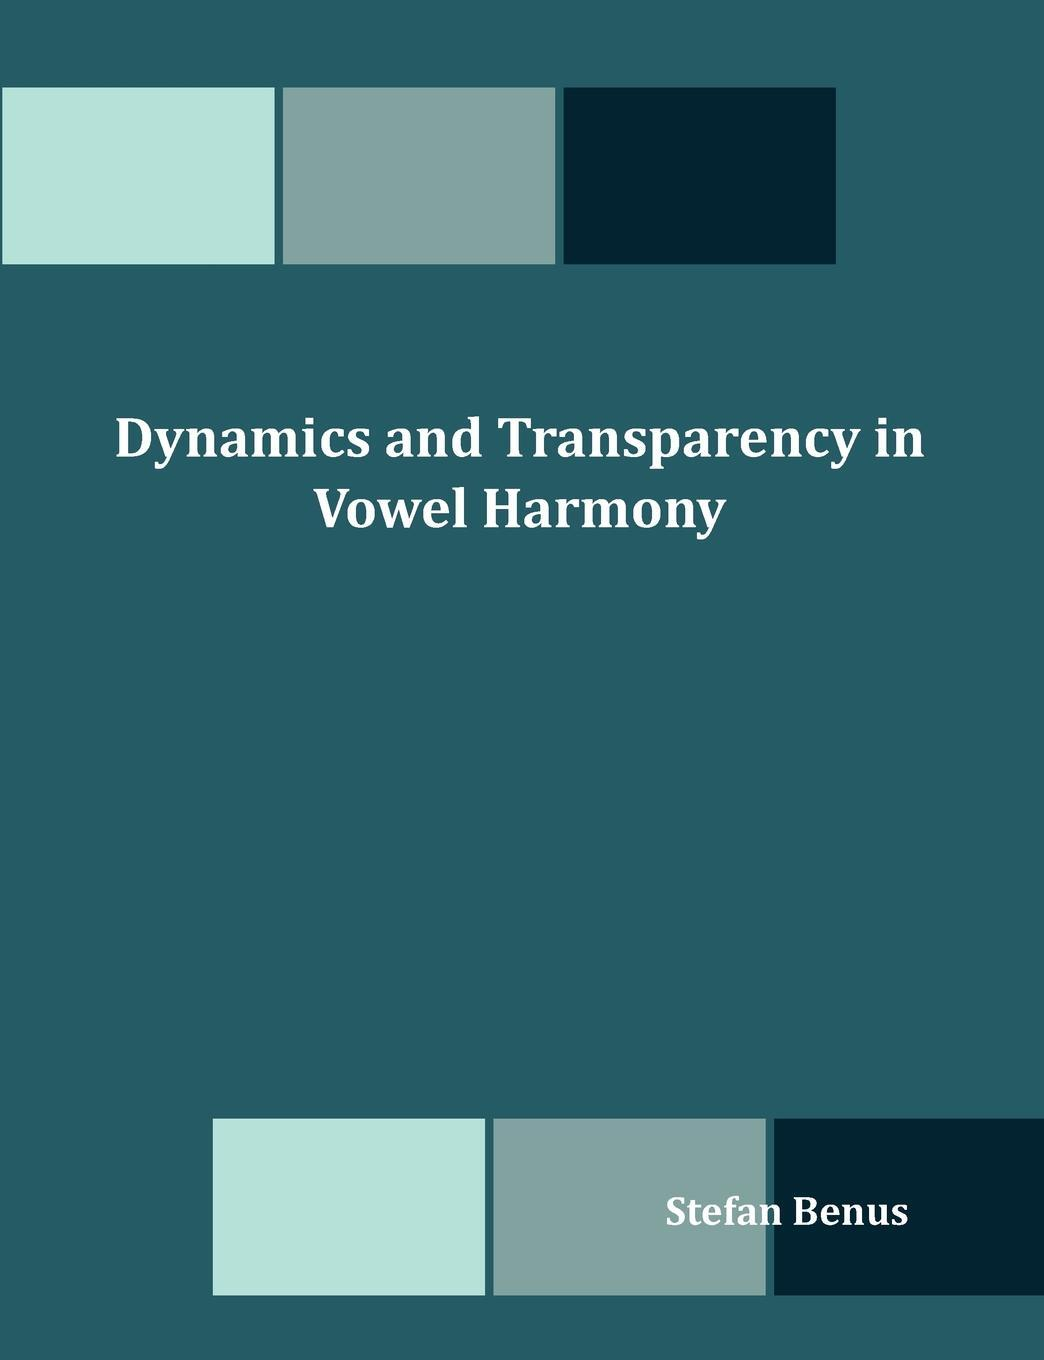 Dynamics and Transparency in Vowel Harmony. Stefan Benus